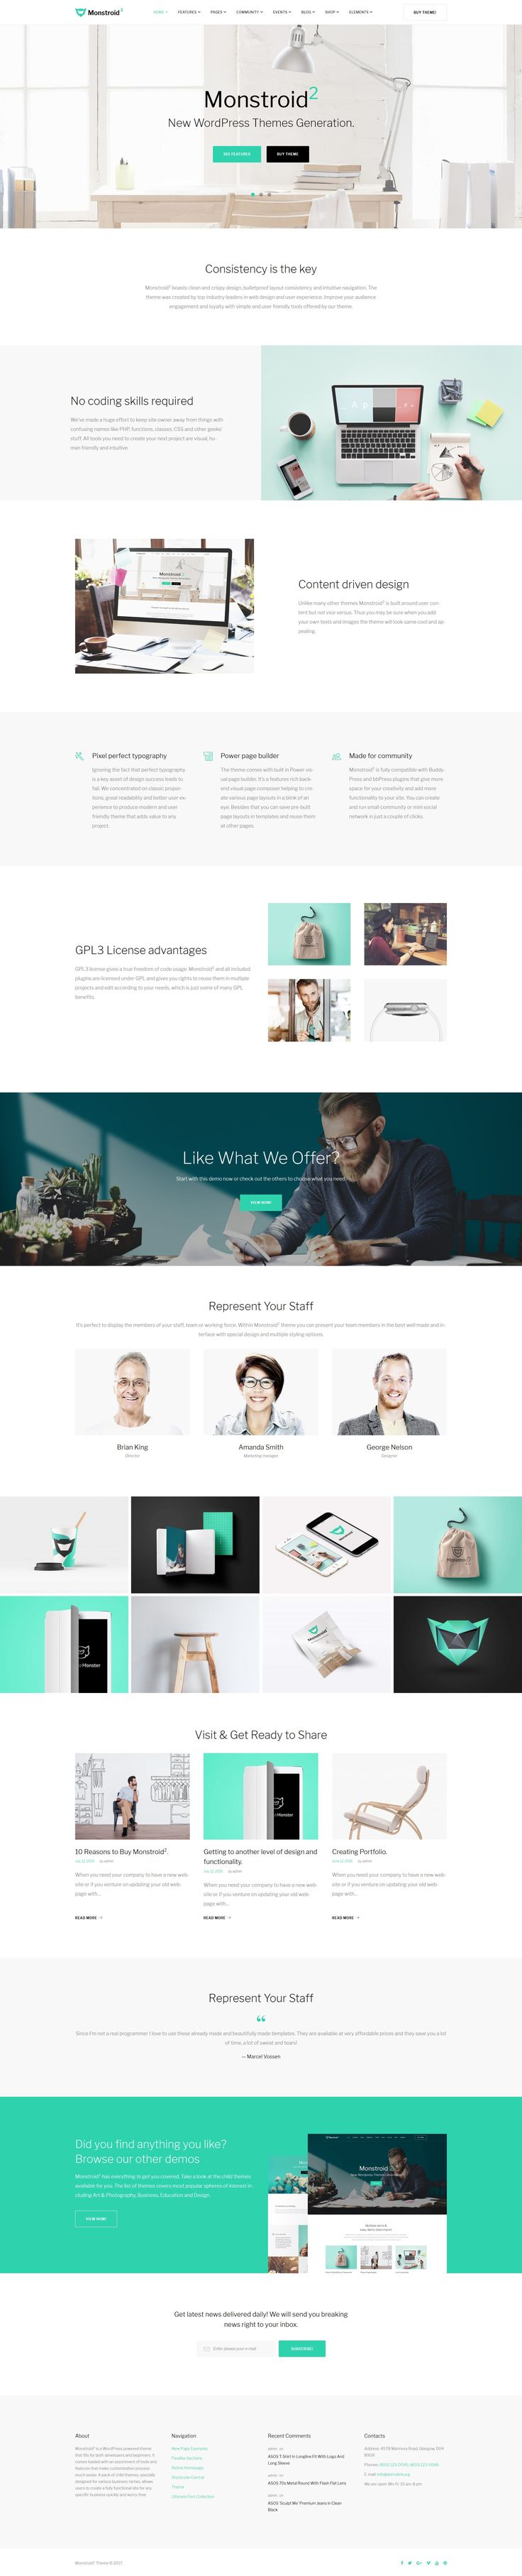 Monstroid2 - Multipurpose WordPress Theme Big Screenshot